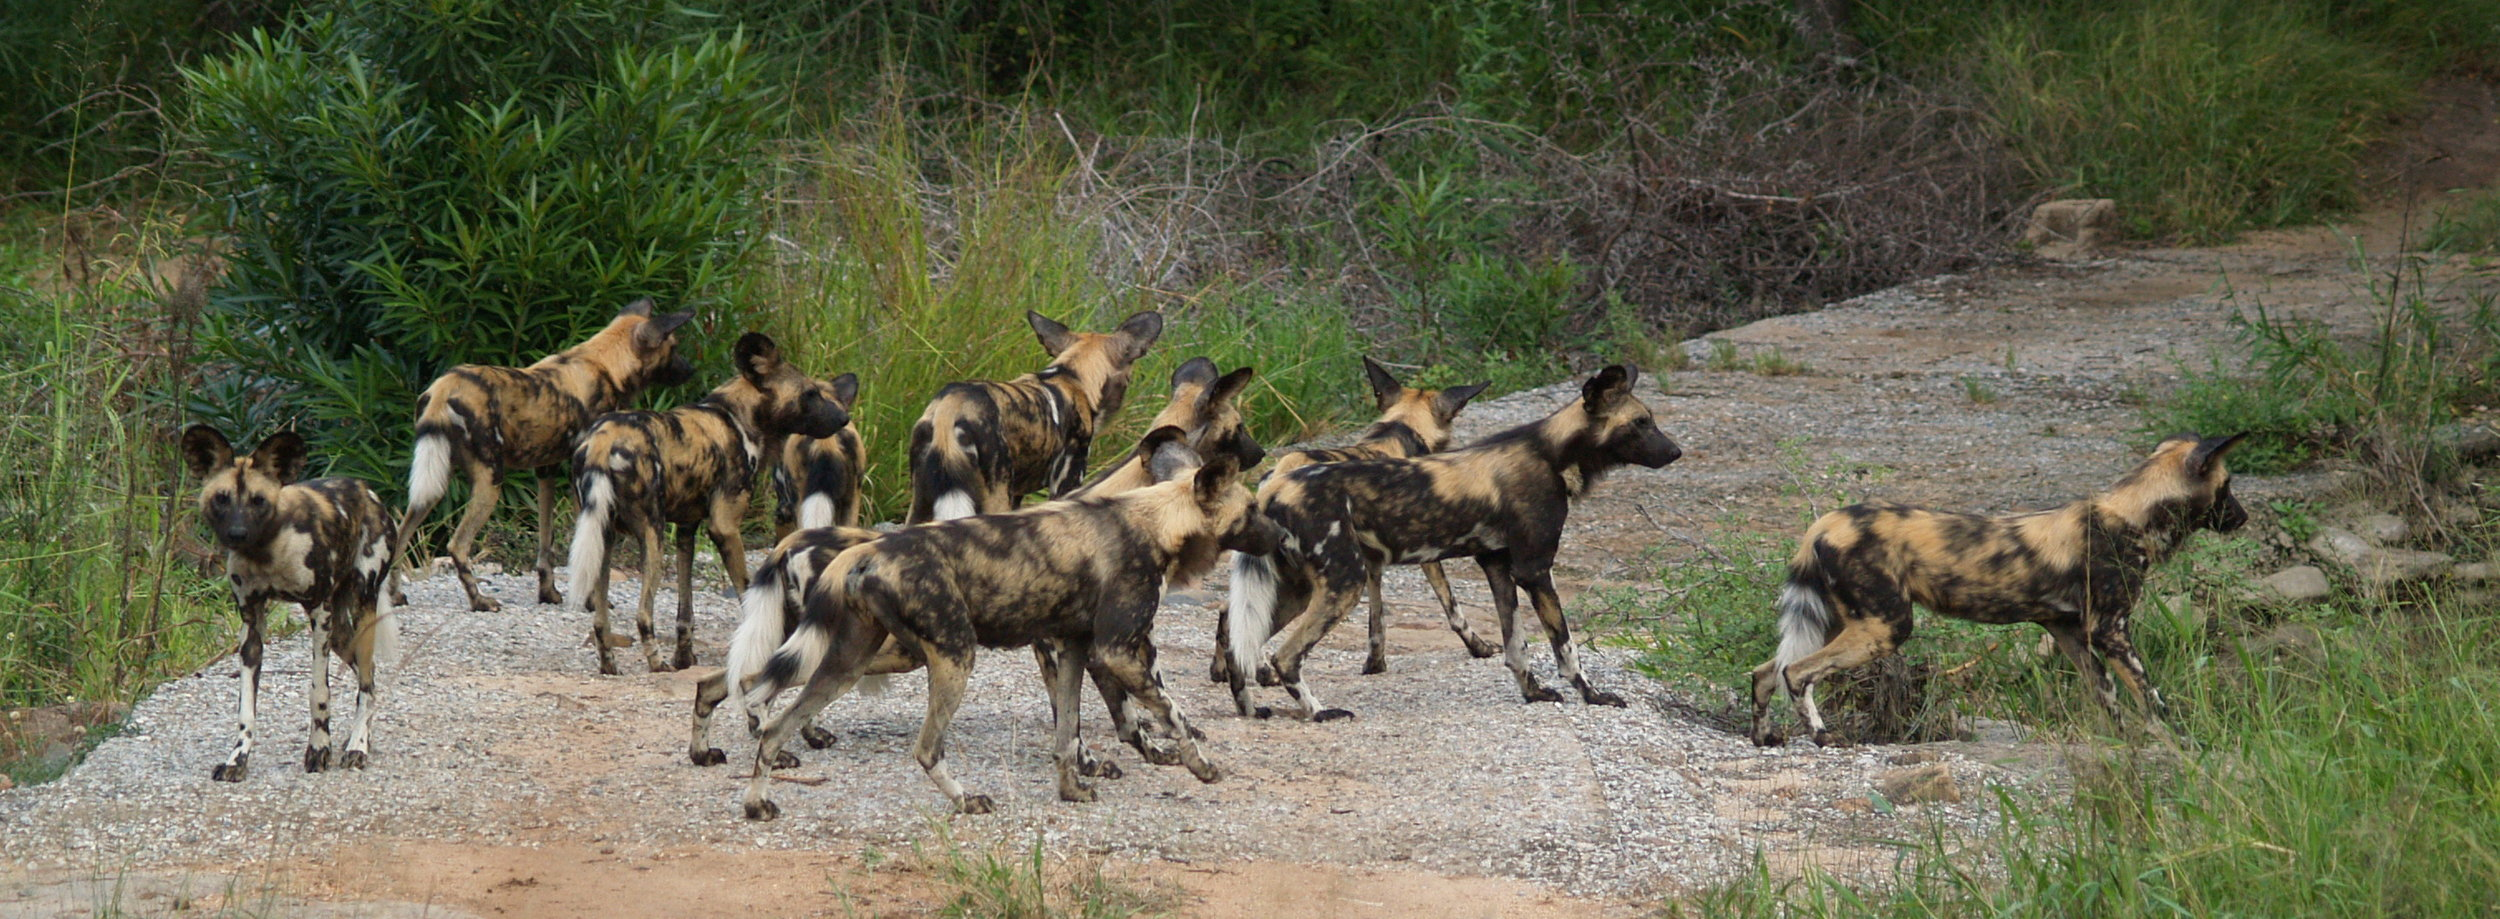 African wild dogs are pack hunting expert, which doesn't make them very popular among livestock farmers. Image by  Bart Swanson .